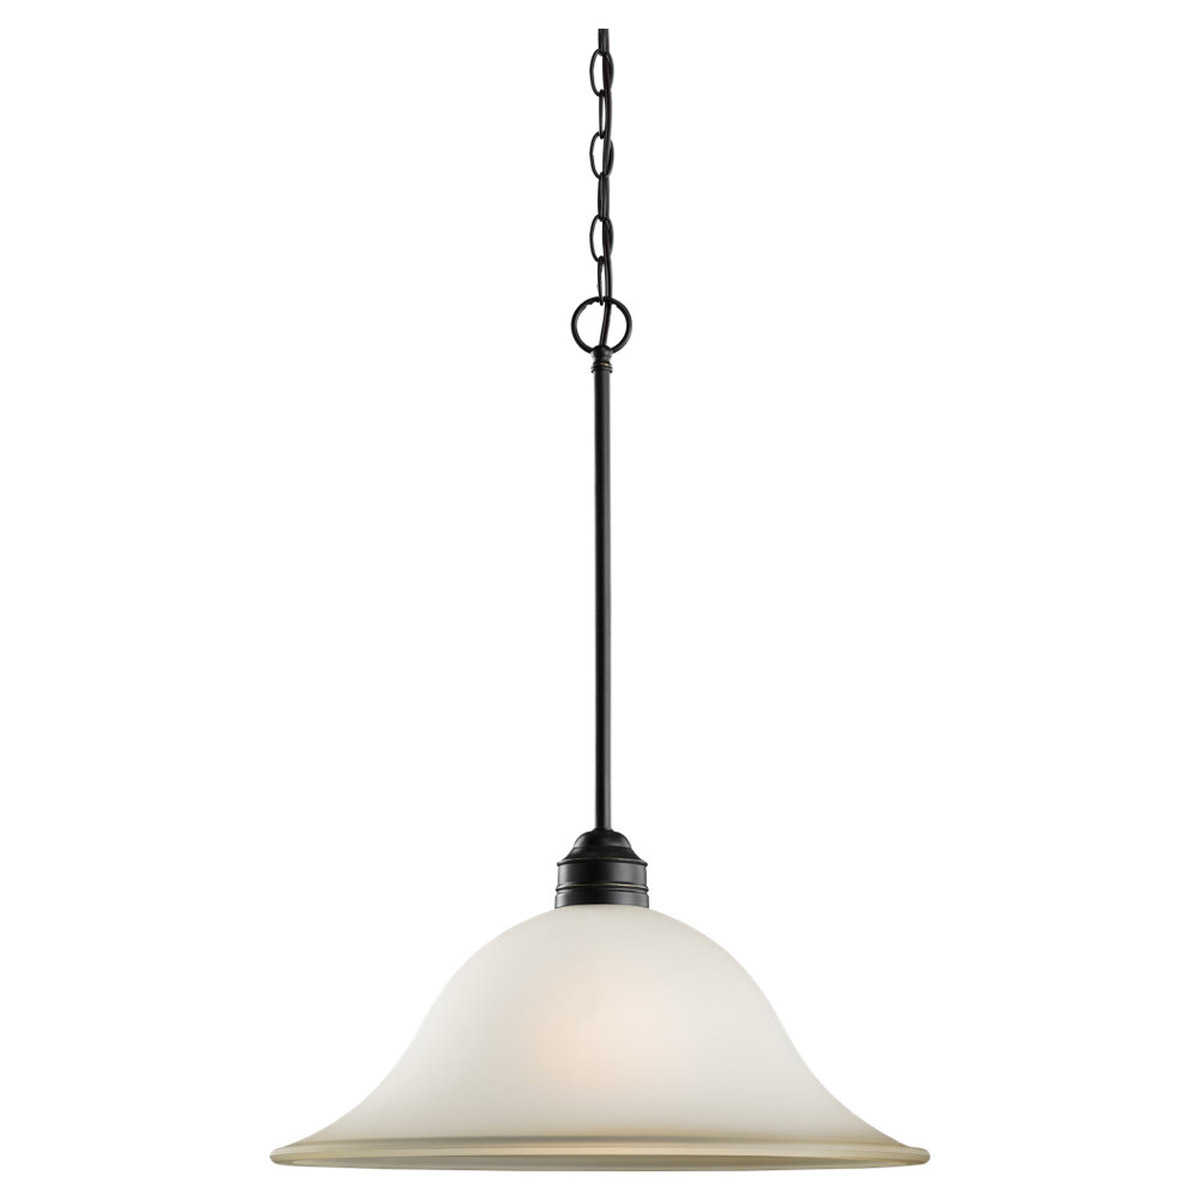 Sea Gull Lighting Gladstone 1 Light Pendant in Heirloom Bronze 65850BLE-782 photo